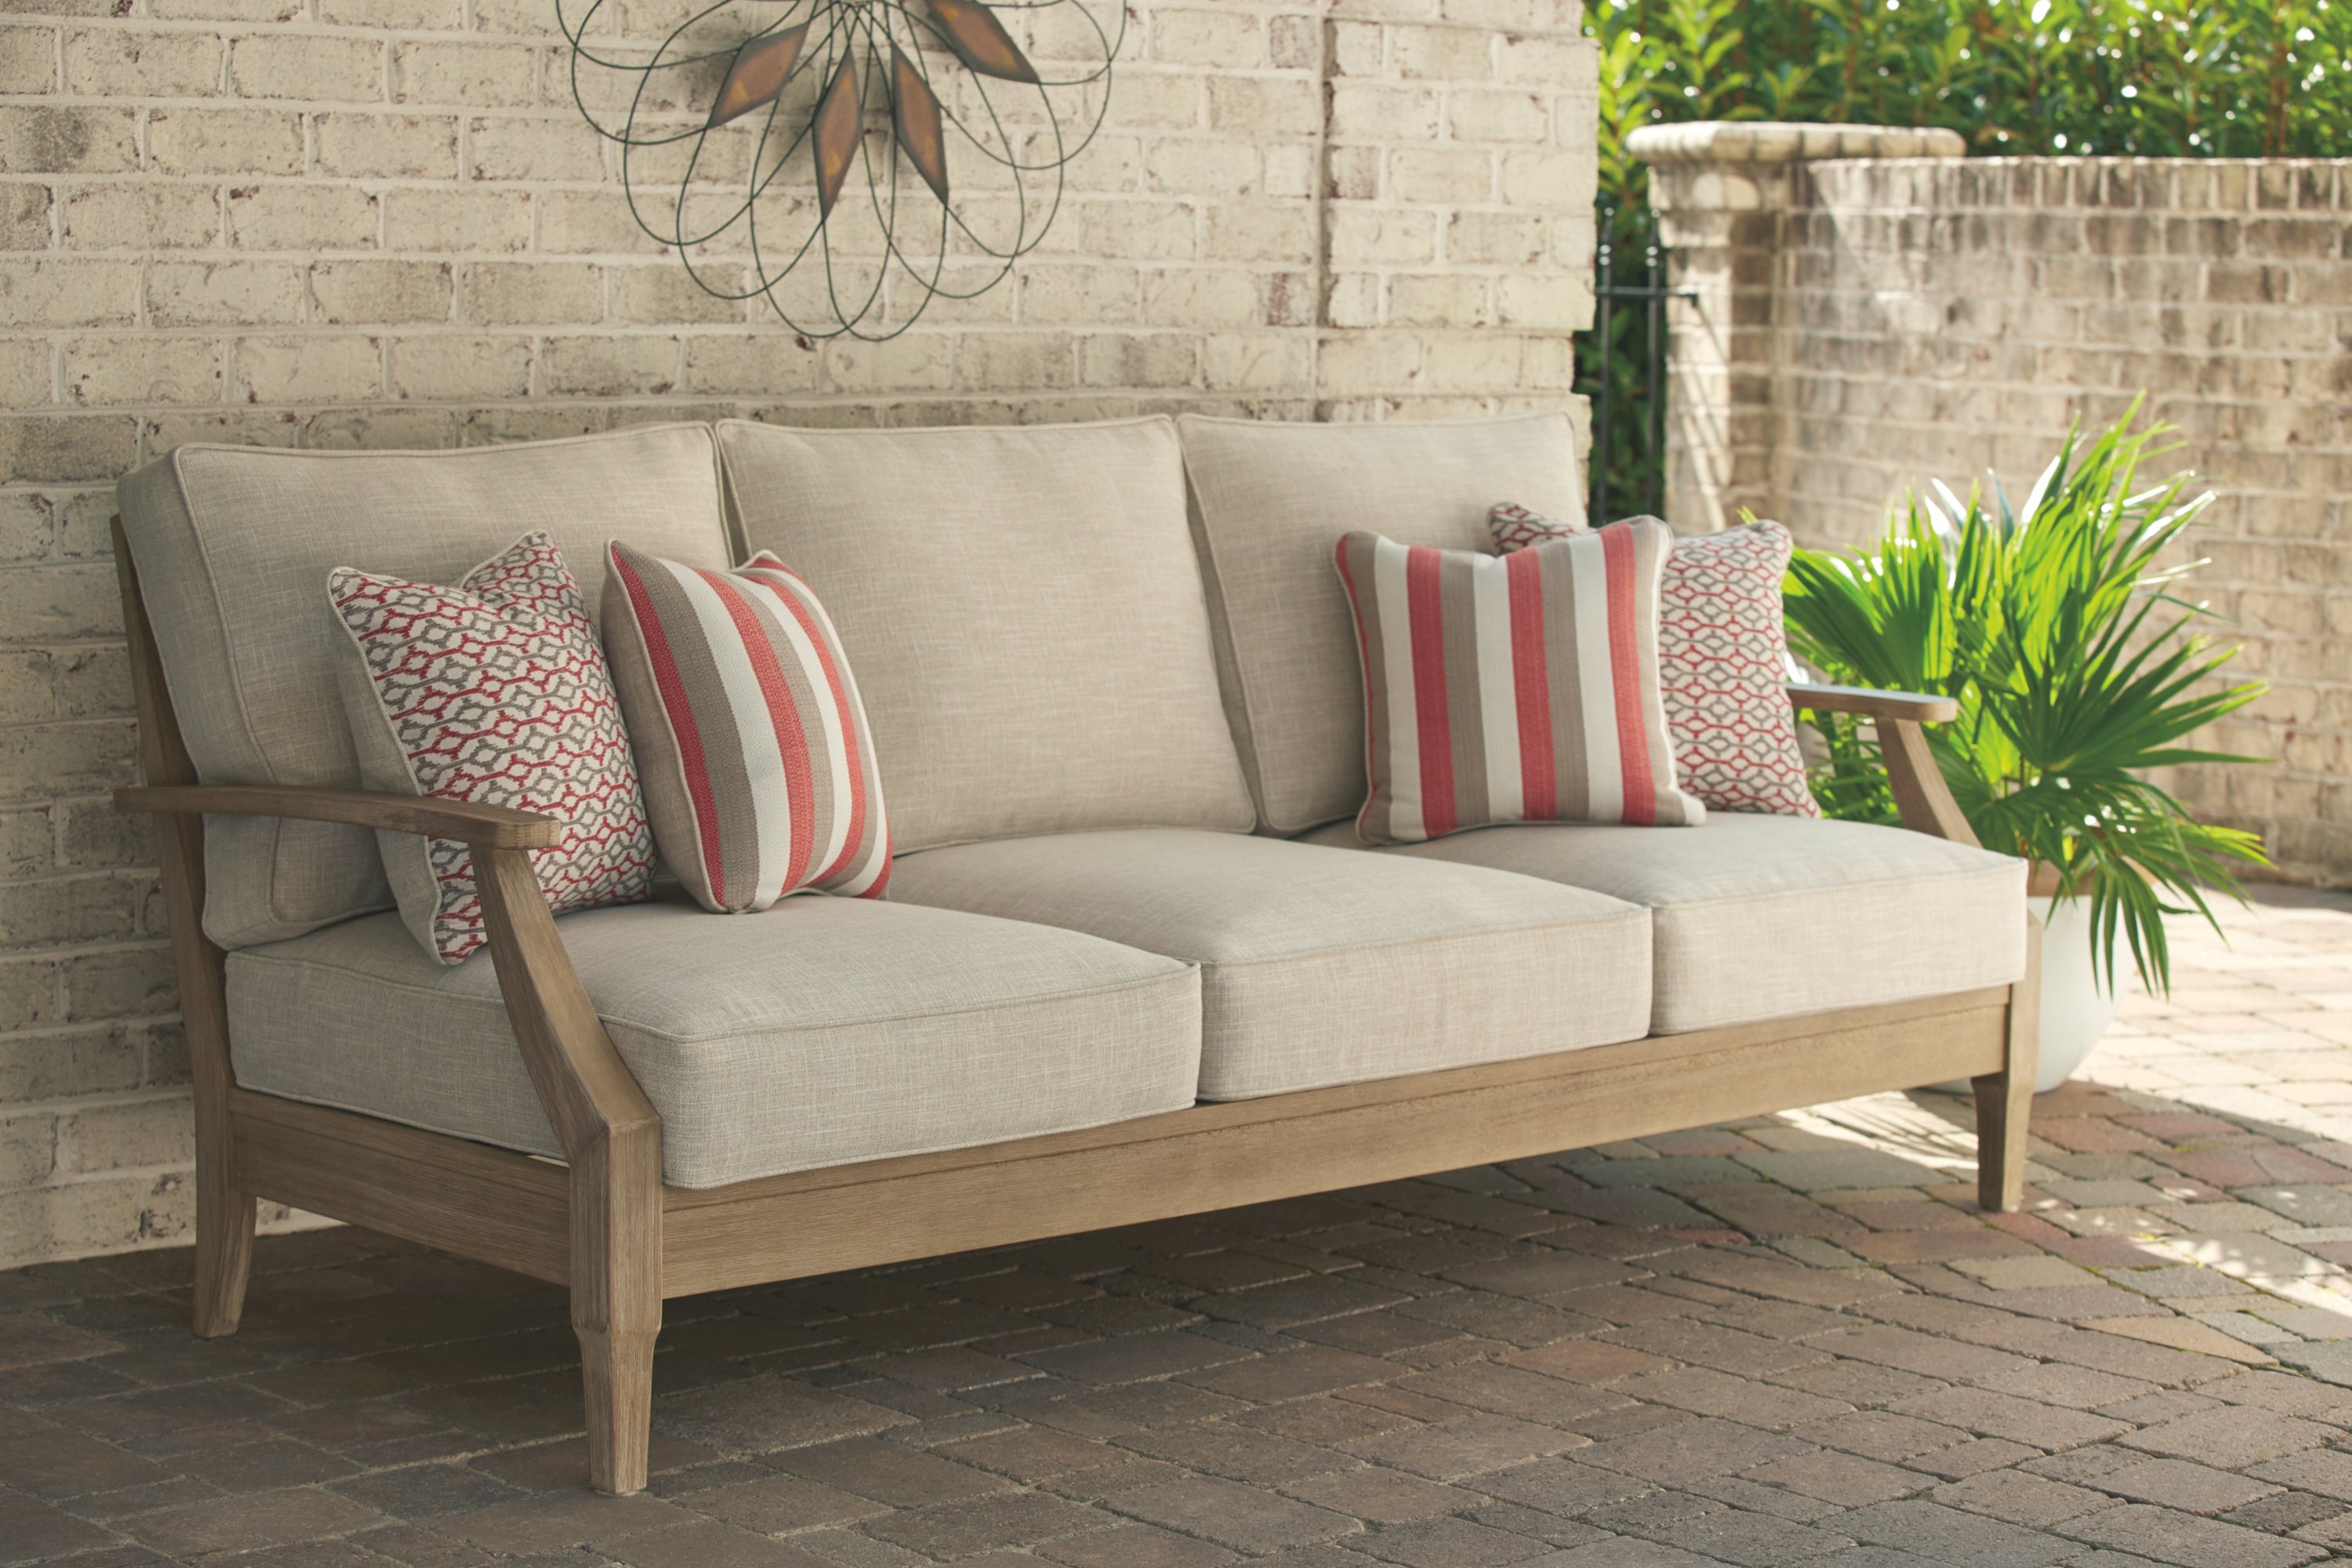 Anguiano Patio Sofa With Cushions Inside Most Current Keever Patio Sofas With Sunbrella Cushions (View 4 of 20)